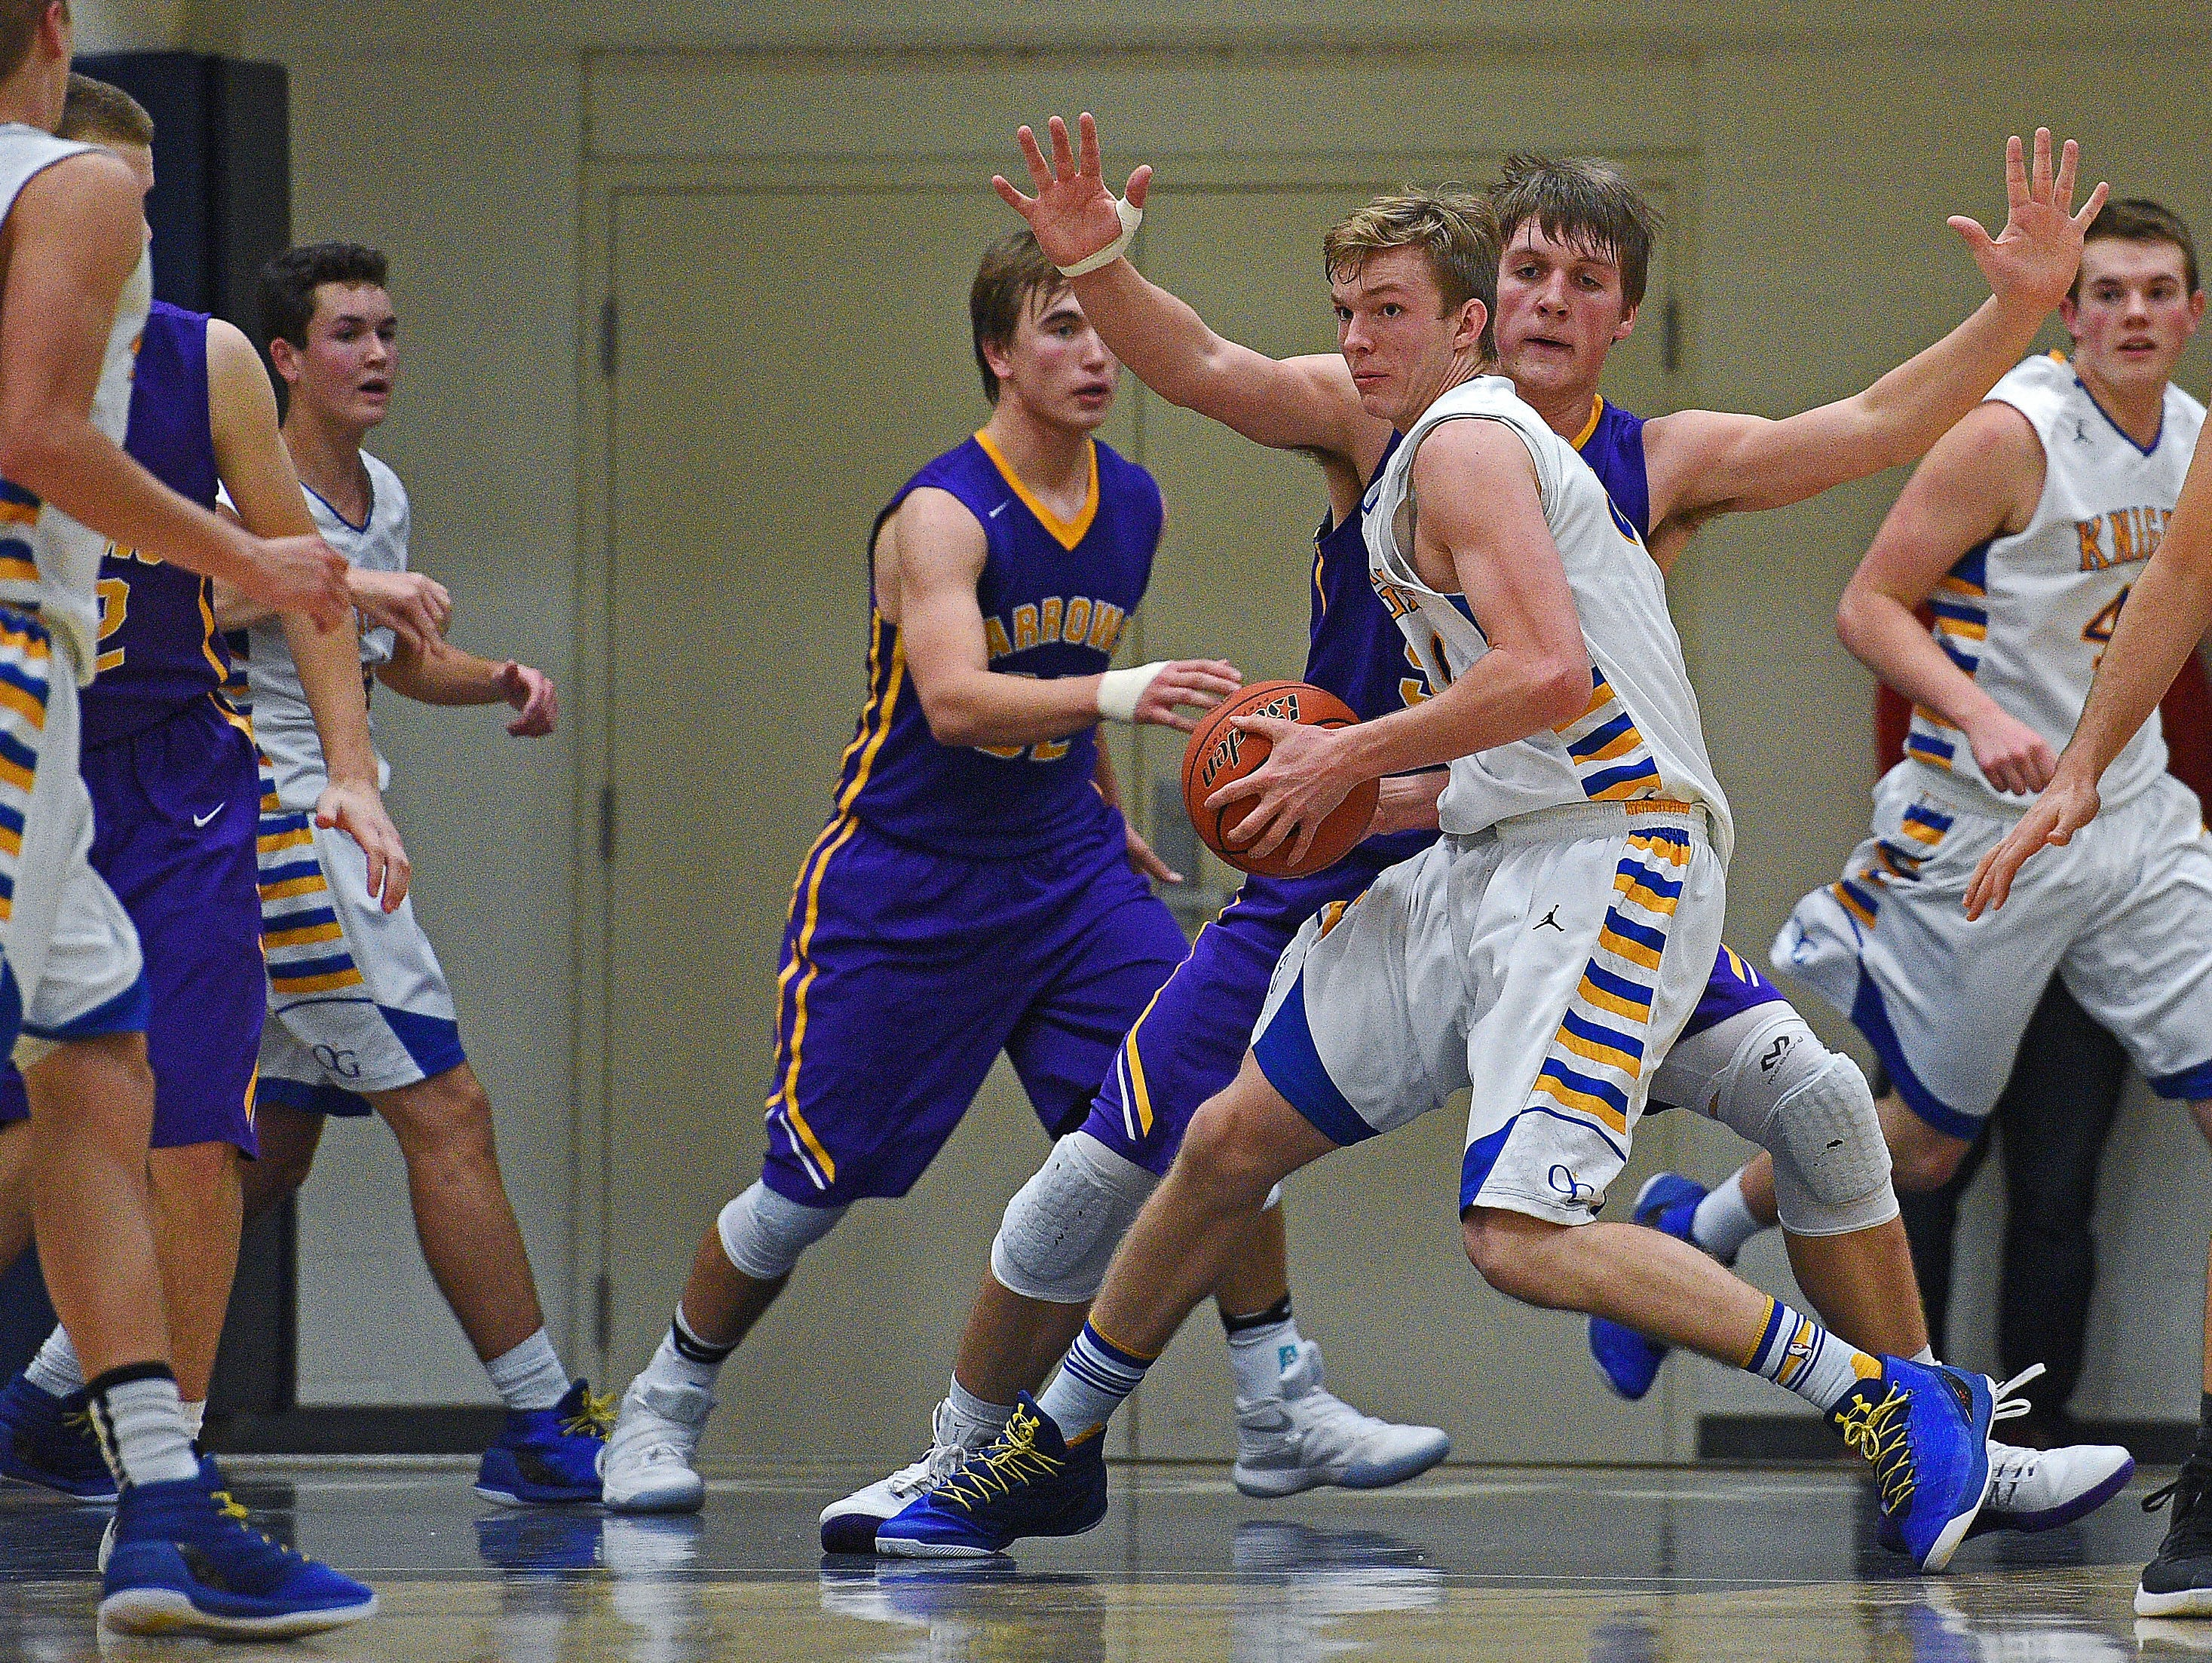 O'Gorman's JP Costello (50) works to keep the ball from Watertown's Spencer Waege (52) during a game Thursday, Dec. 15, 2016, at O'Gorman High School in Sioux Falls.